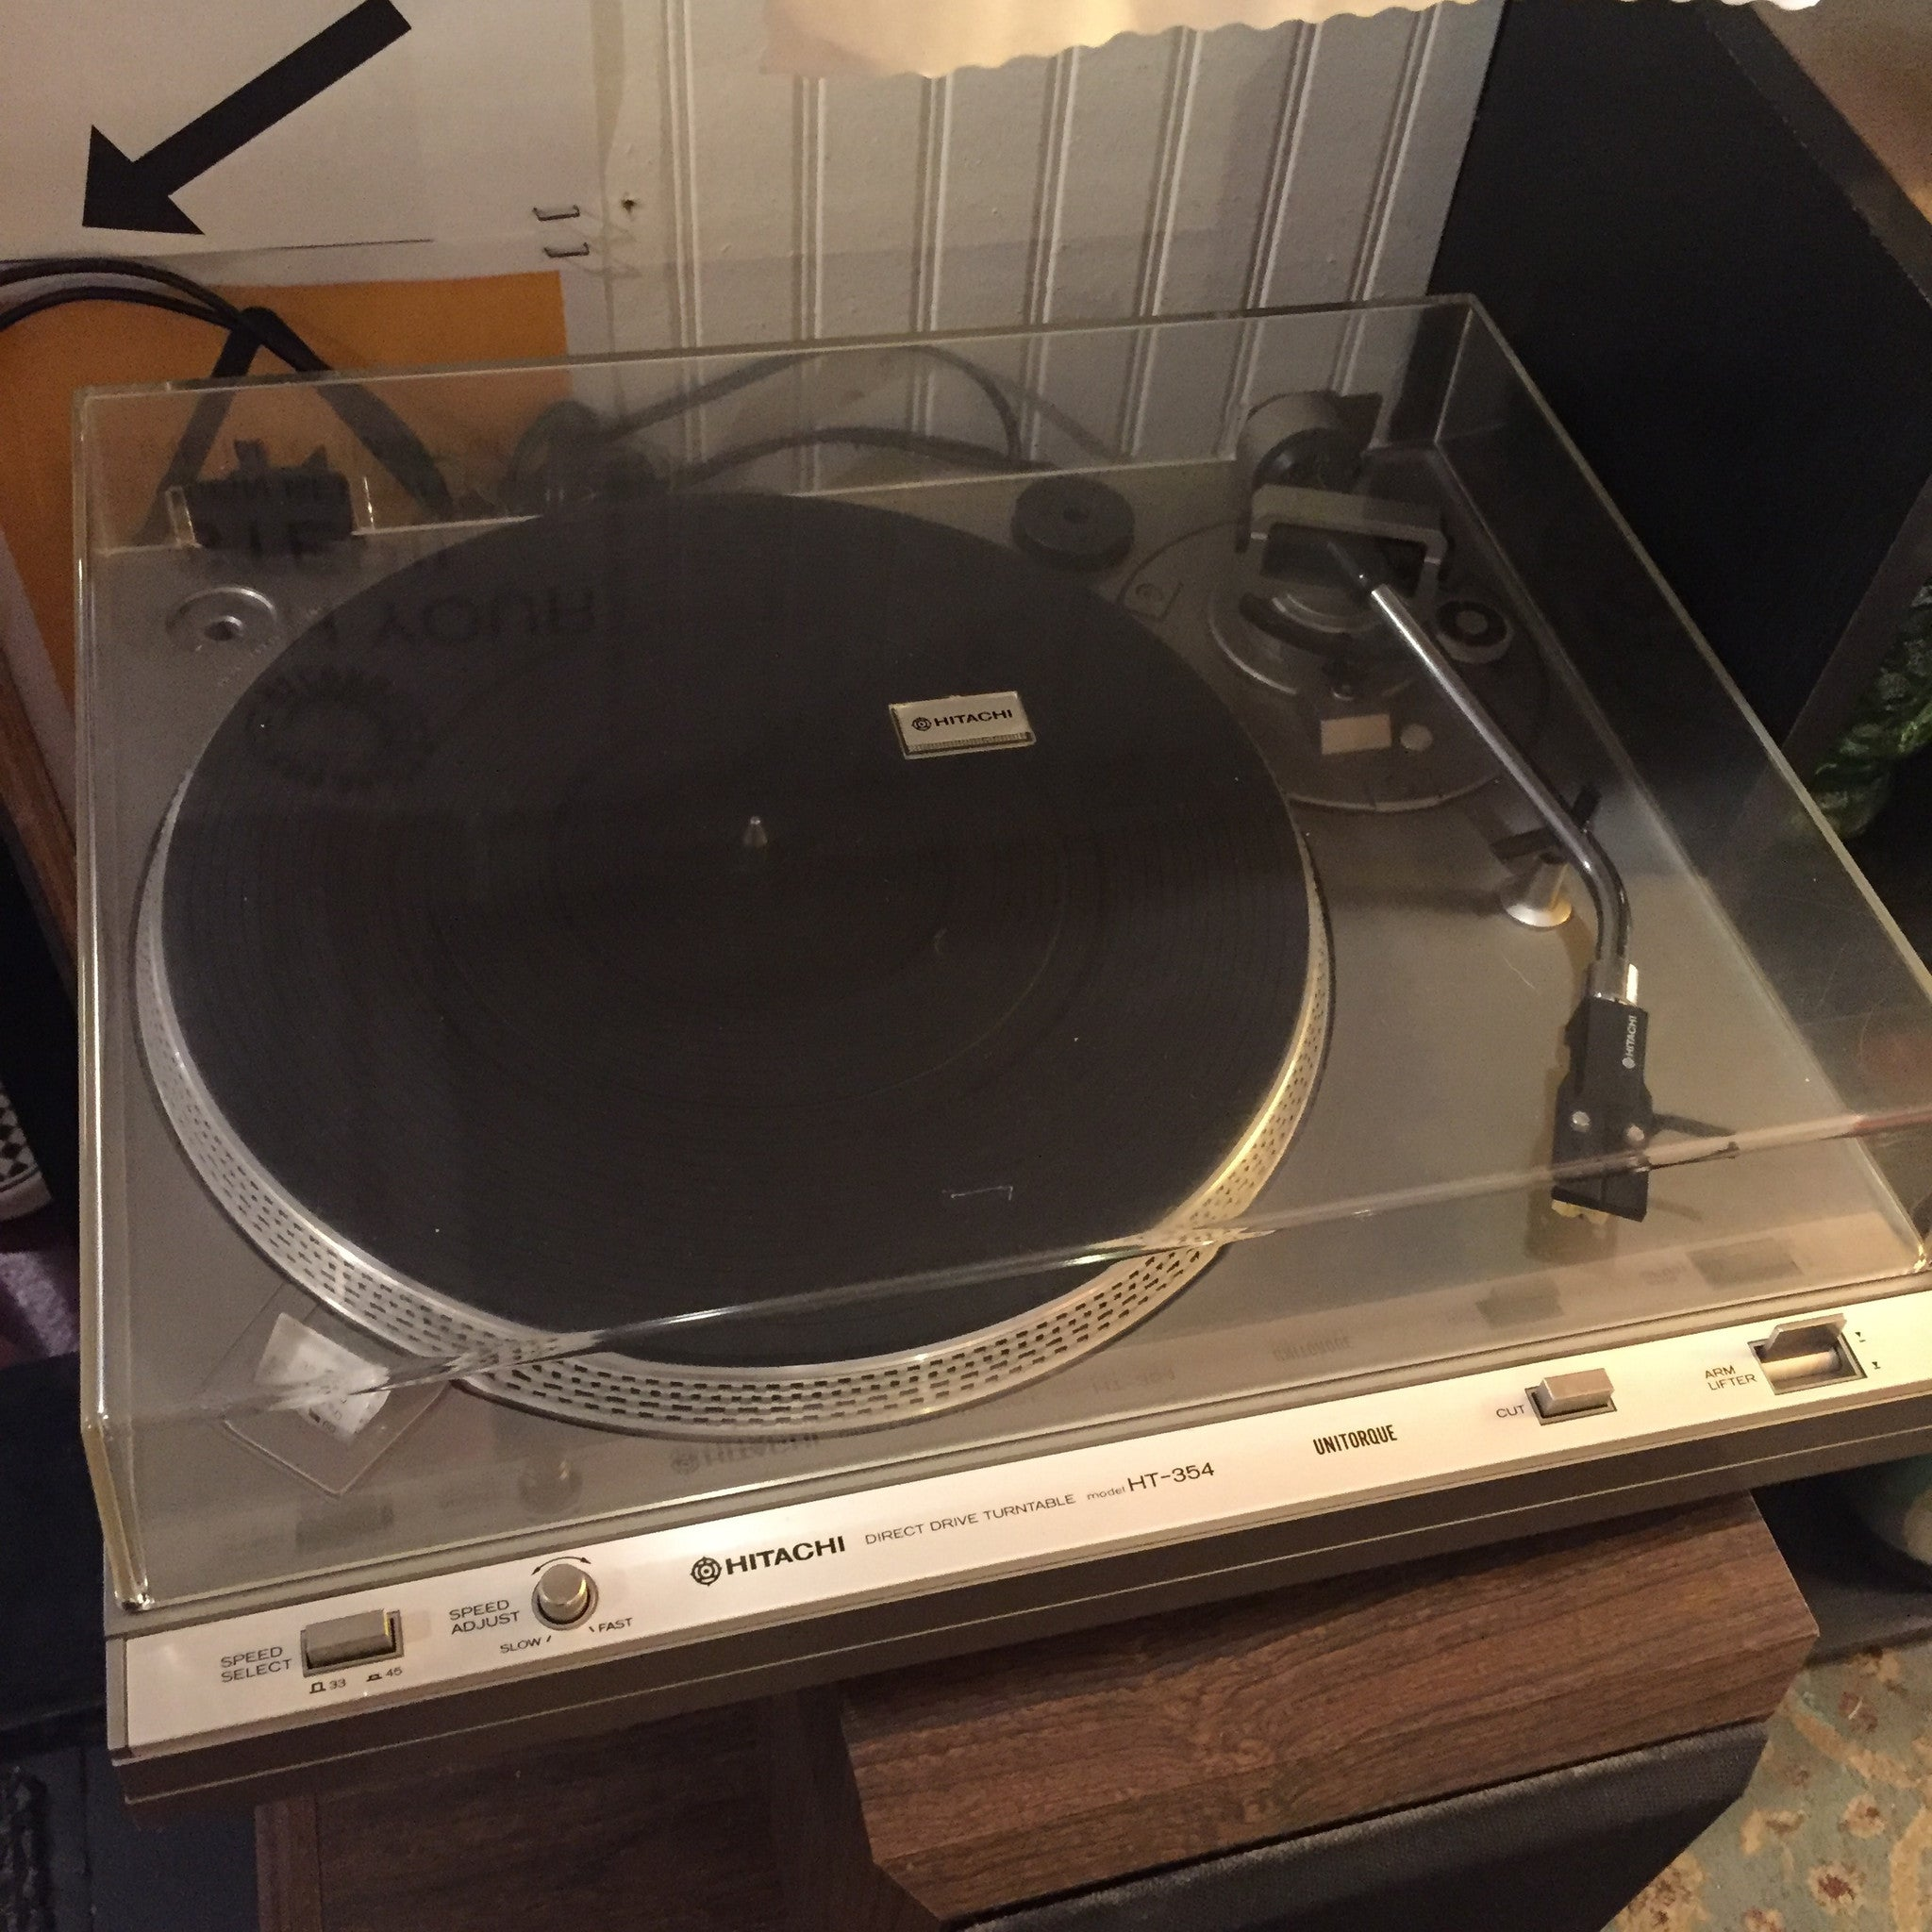 Hitachi HT-354 Direct Drive Turntable - Fully Restored